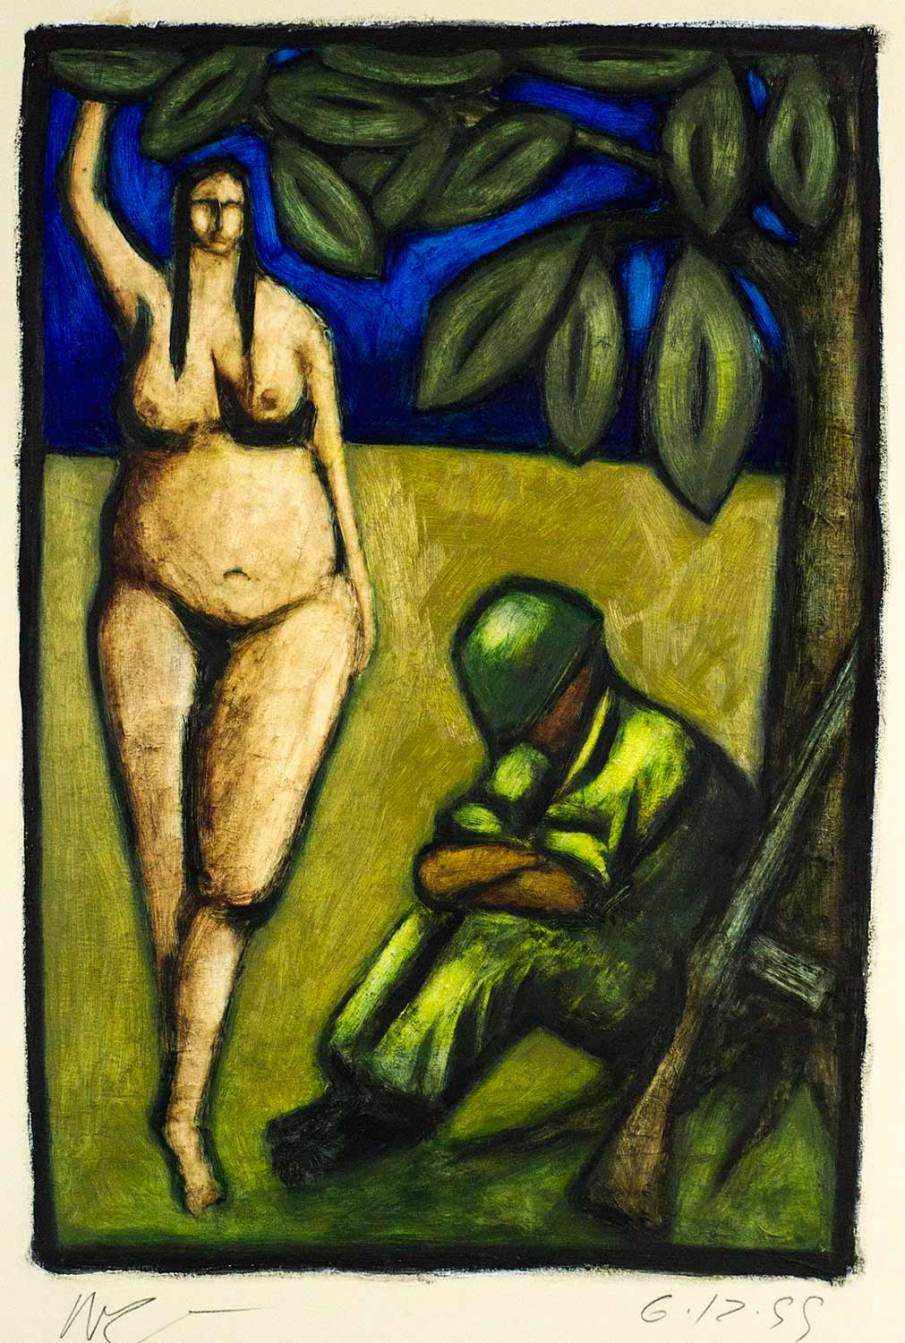 Fat Betty and Sleeping Soldier, oil on paper, 30 X 22, 1999